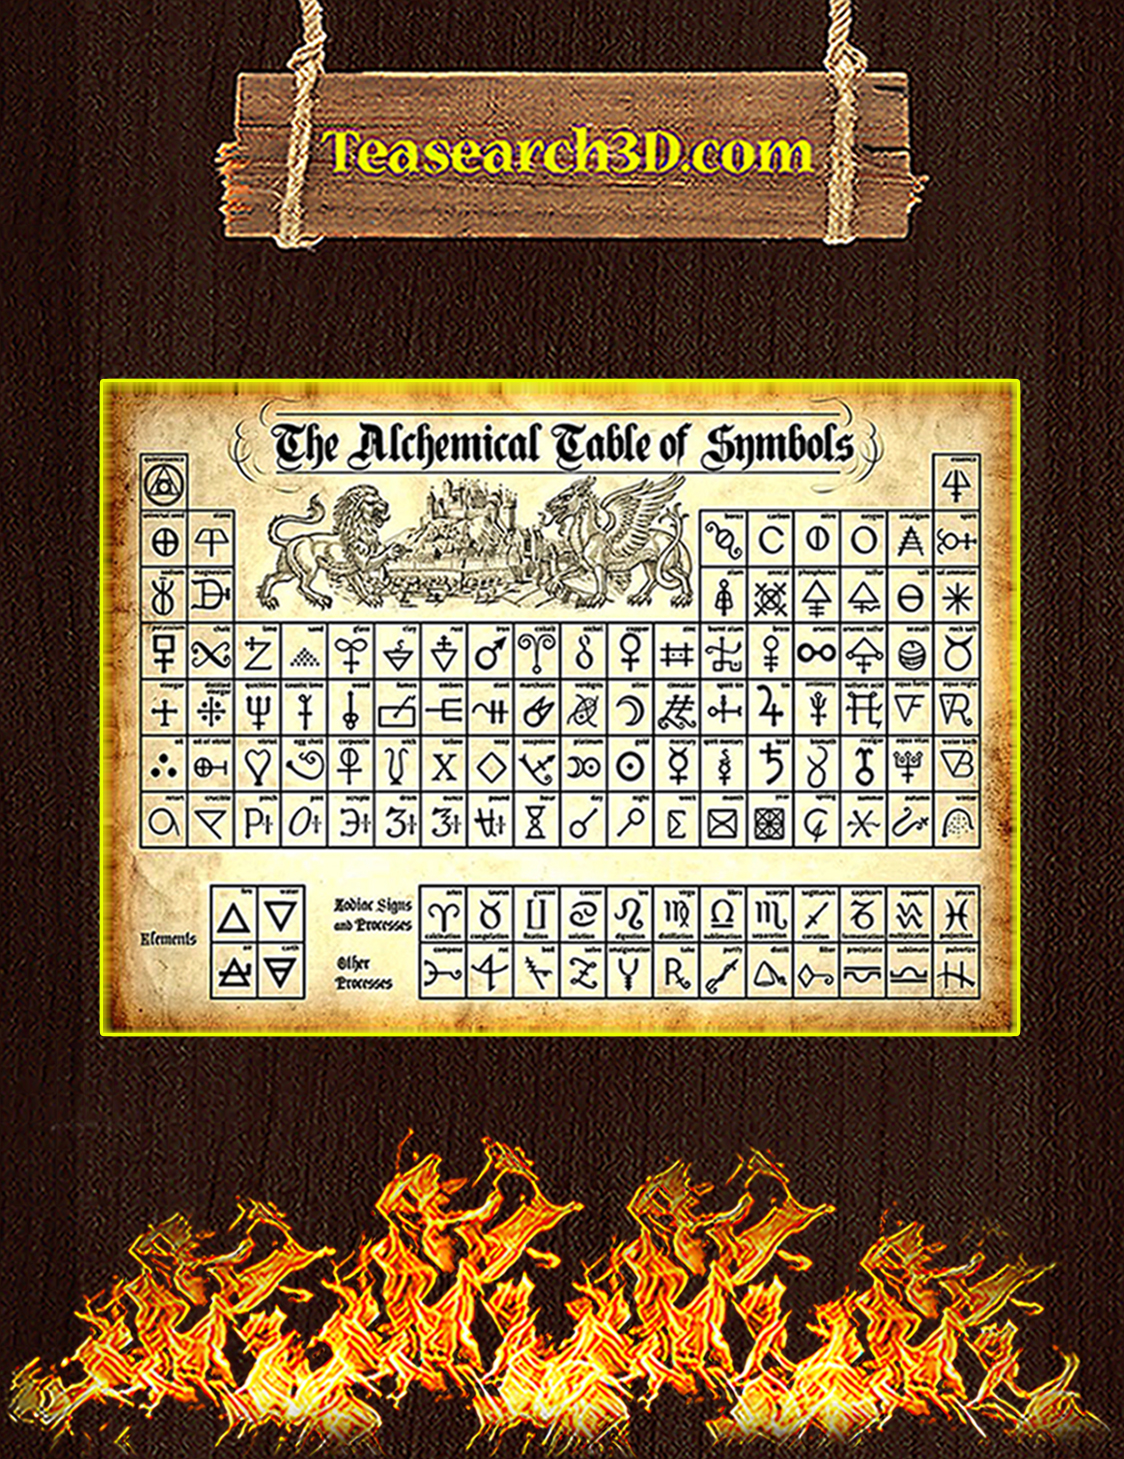 The alchemical table of symbols poster A3